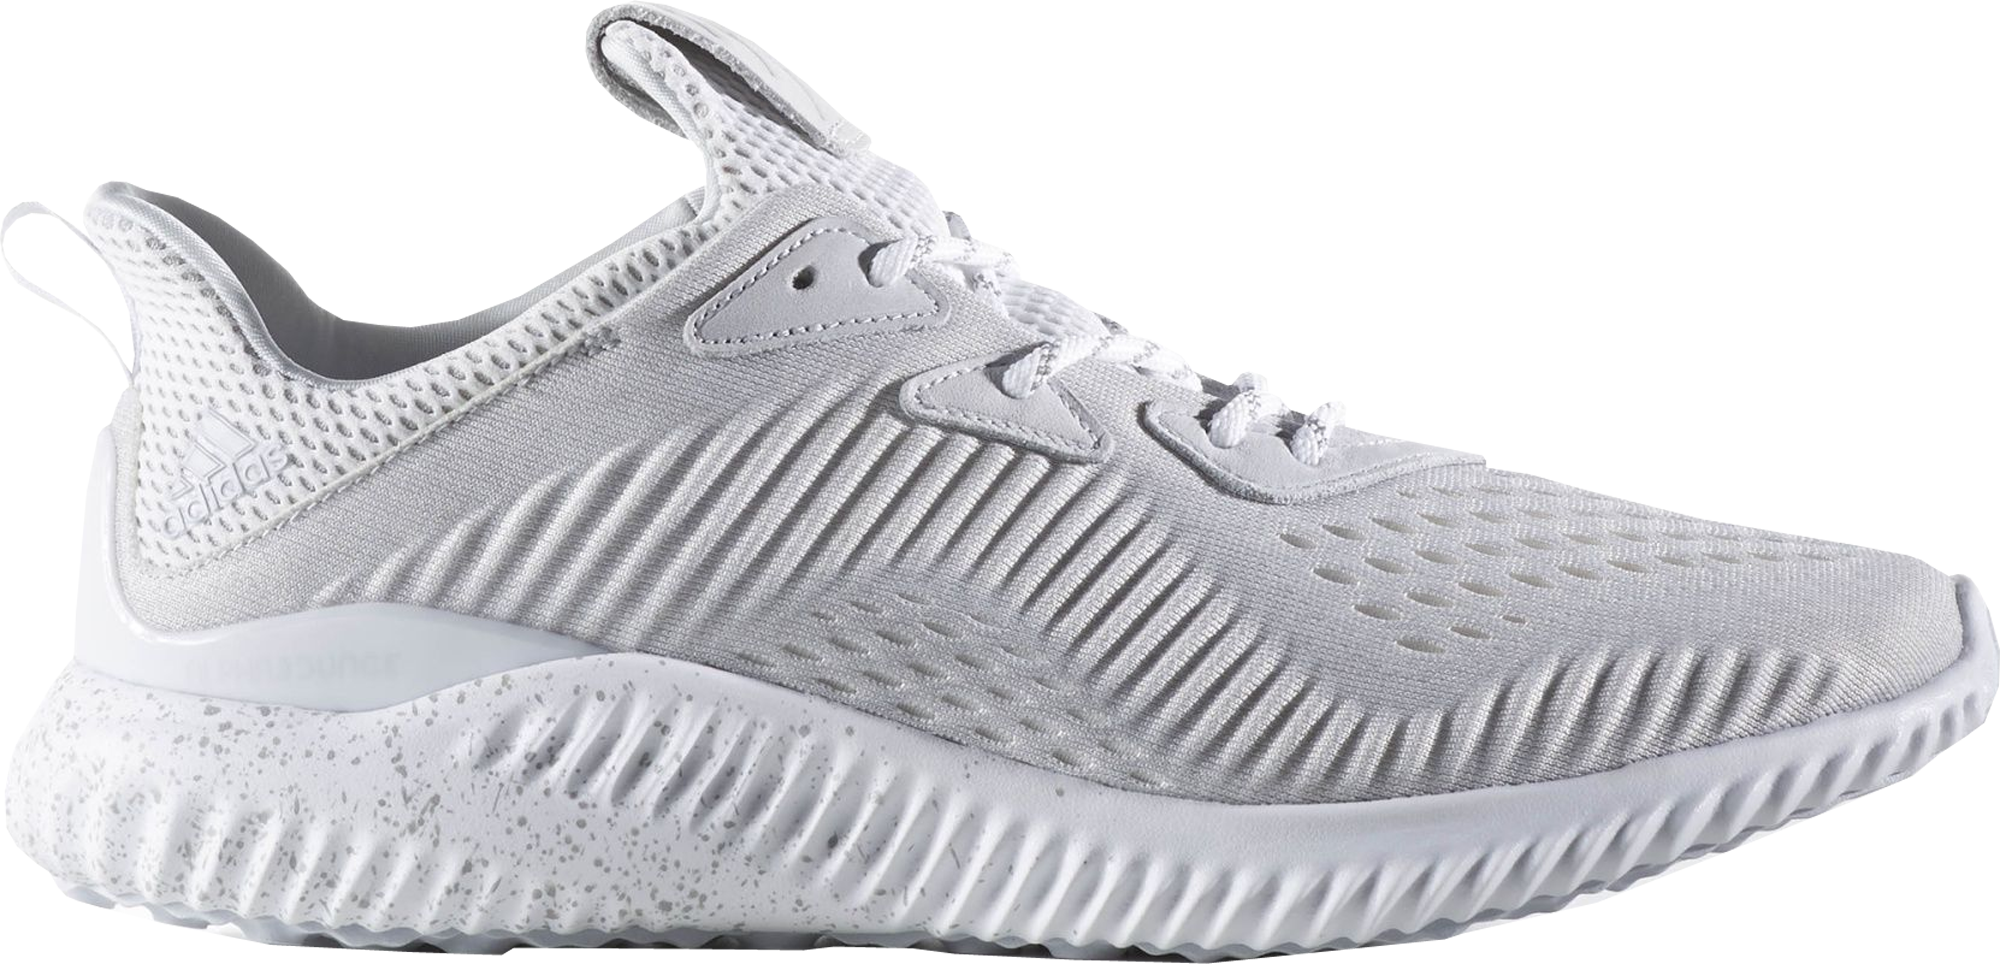 adidas AlphaBounce Reigning Champ Grey